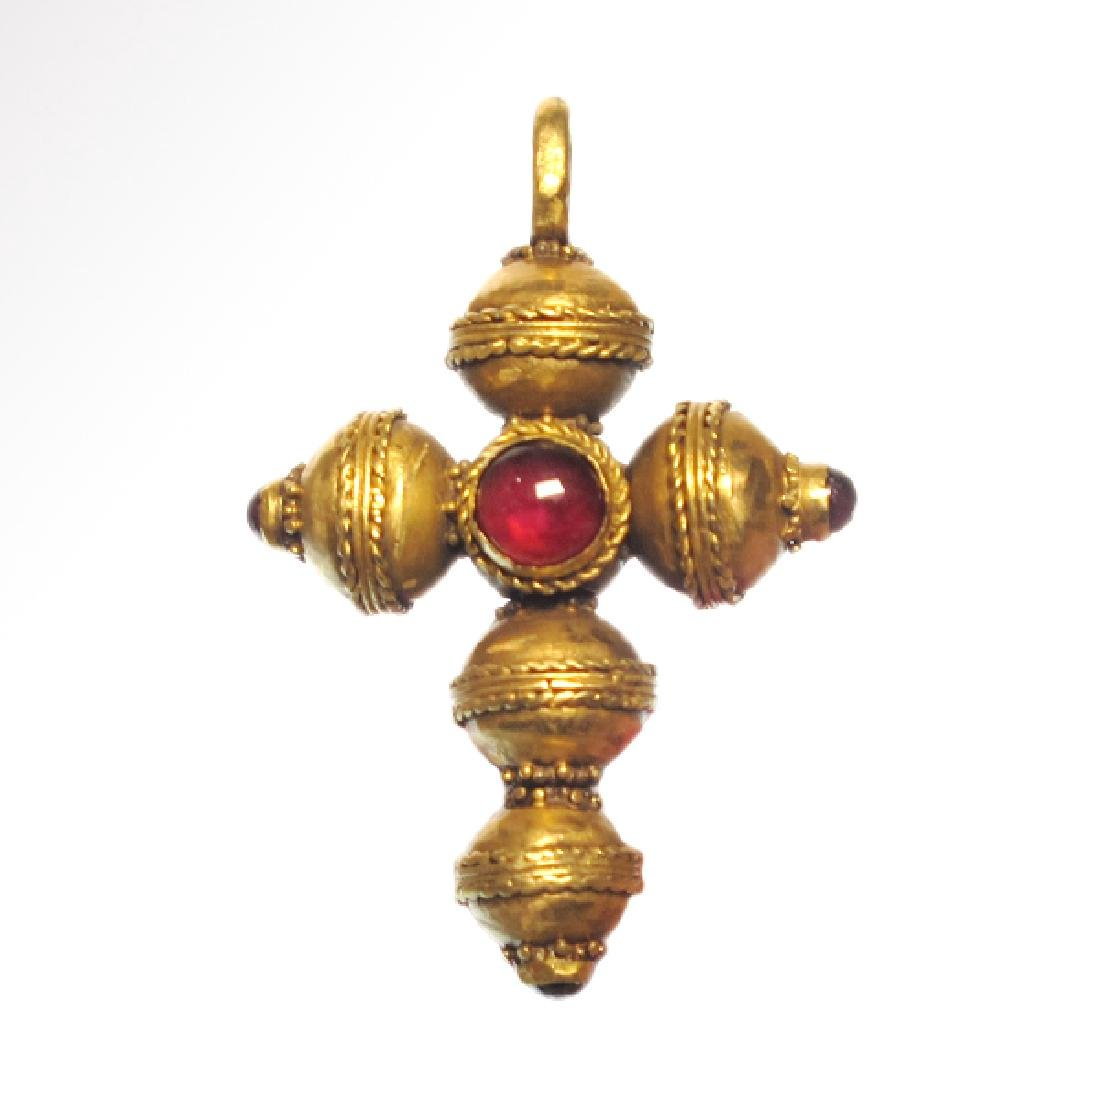 Byzantine Gold and Garnet Cross, c. 11th-12th Century